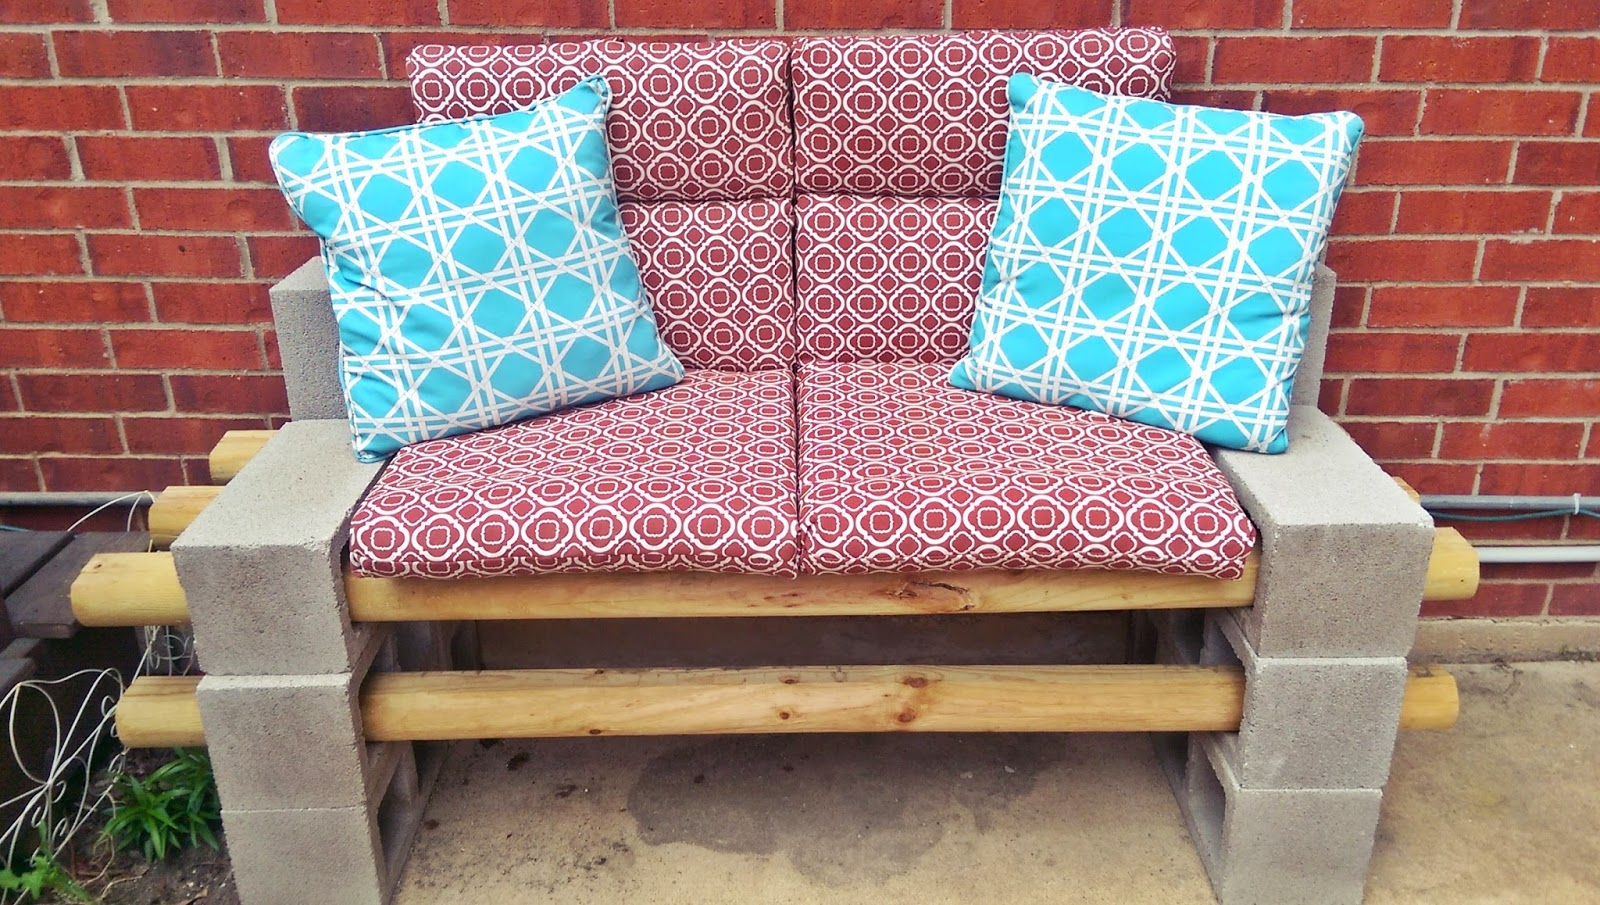 made creations cinder block bench do it yourself outdoor seating